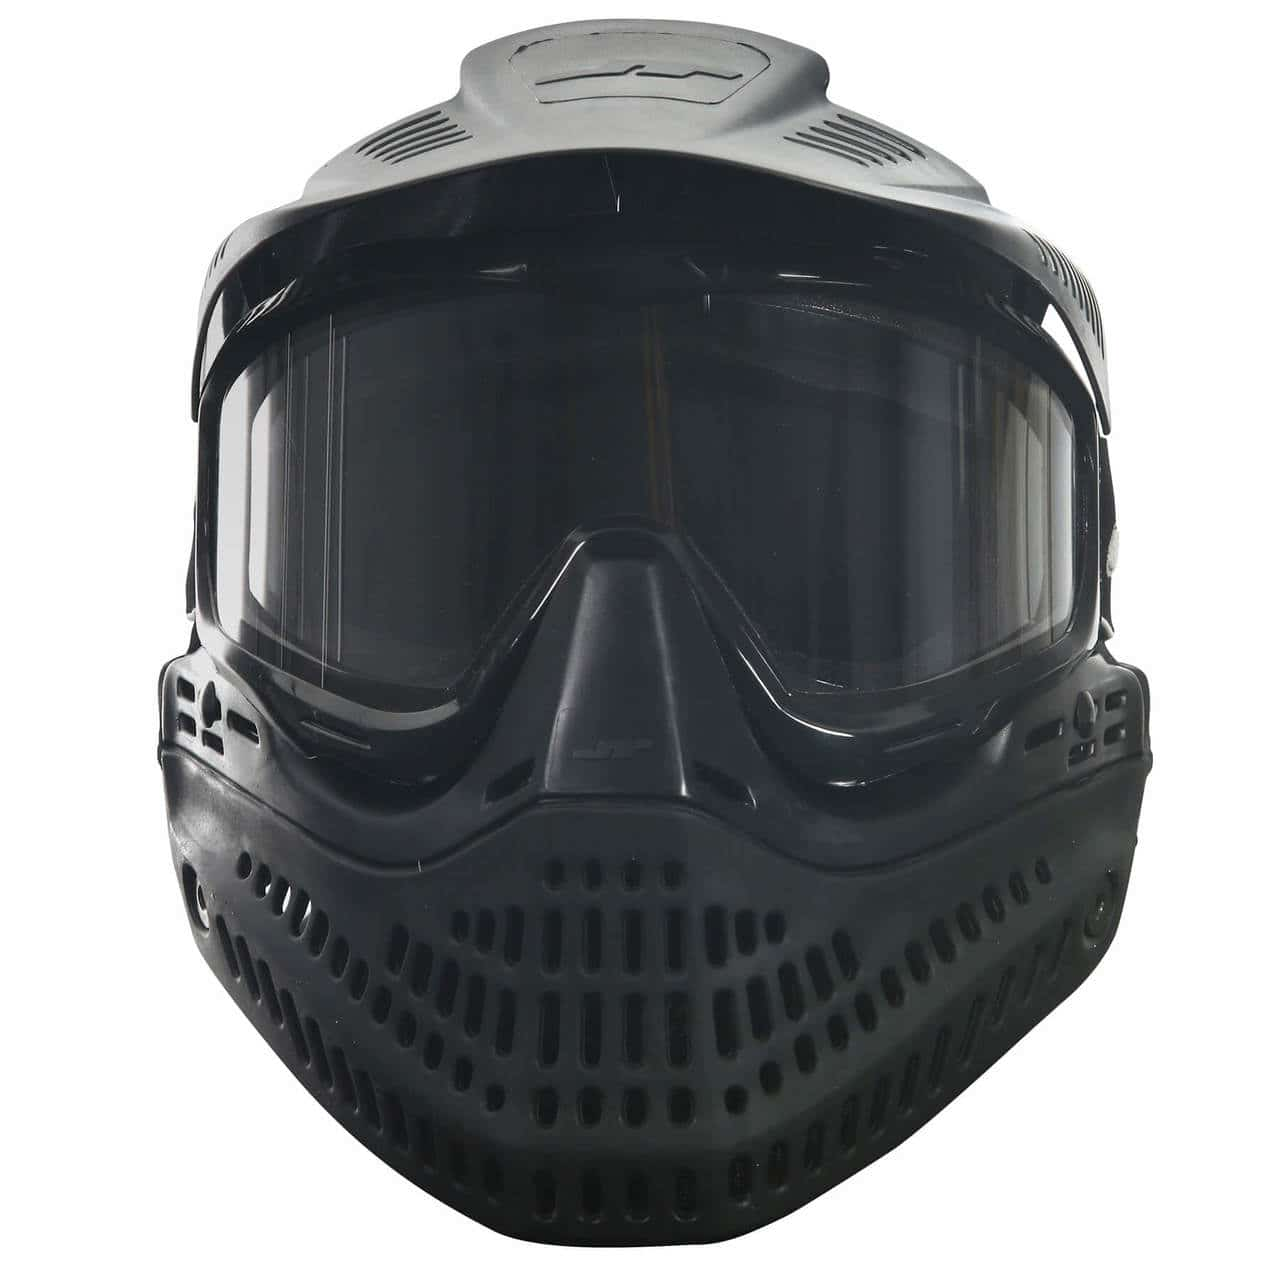 Best You Can Buy Jt Proflex Thermal Paintball Mask Men S Gear